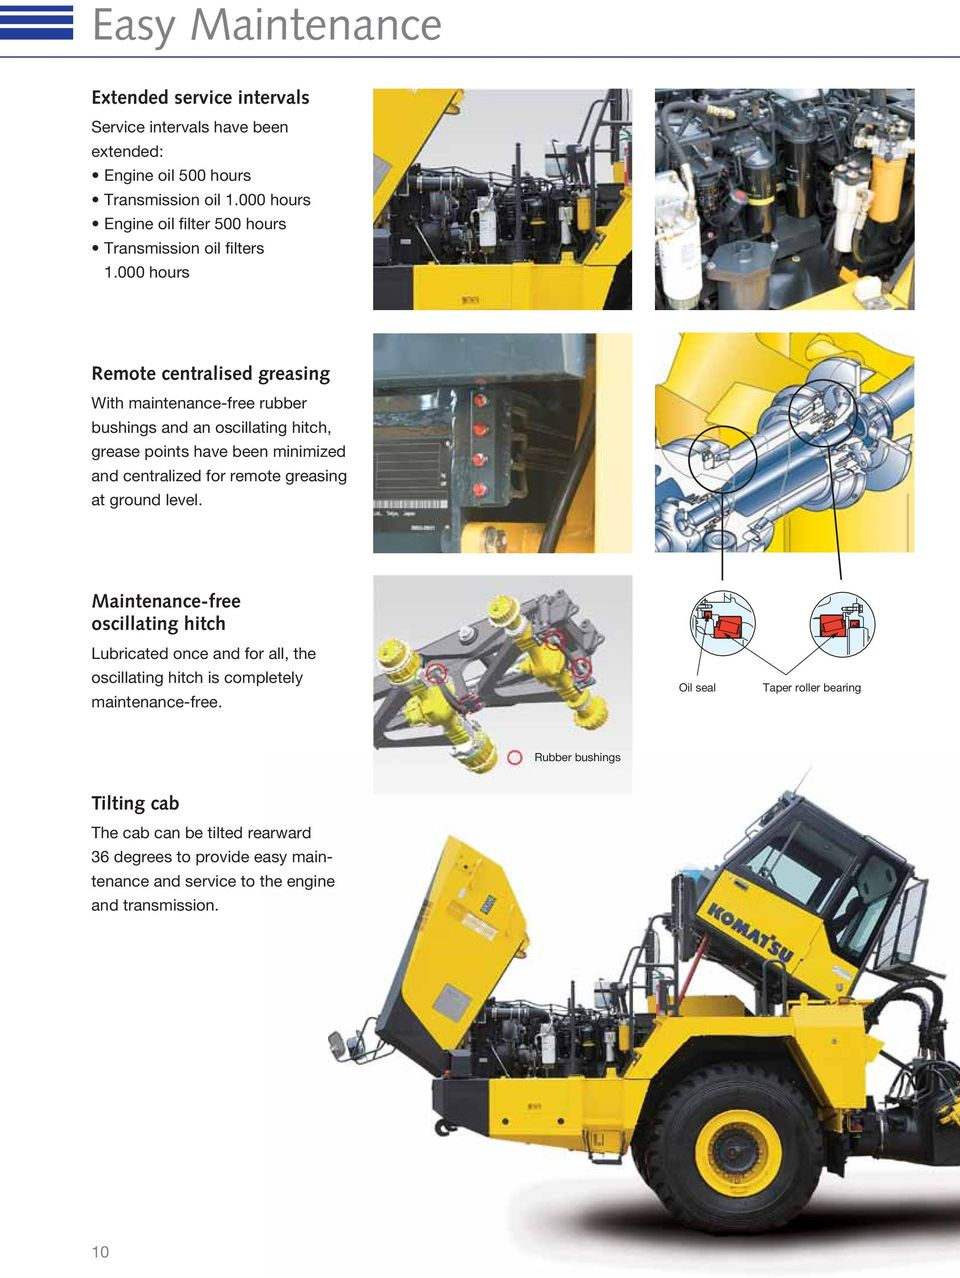 000 hours Remote centralised greasing With maintenance-free rubber bushings and an oscillating hitch, grease points have been minimized and centralized for remote